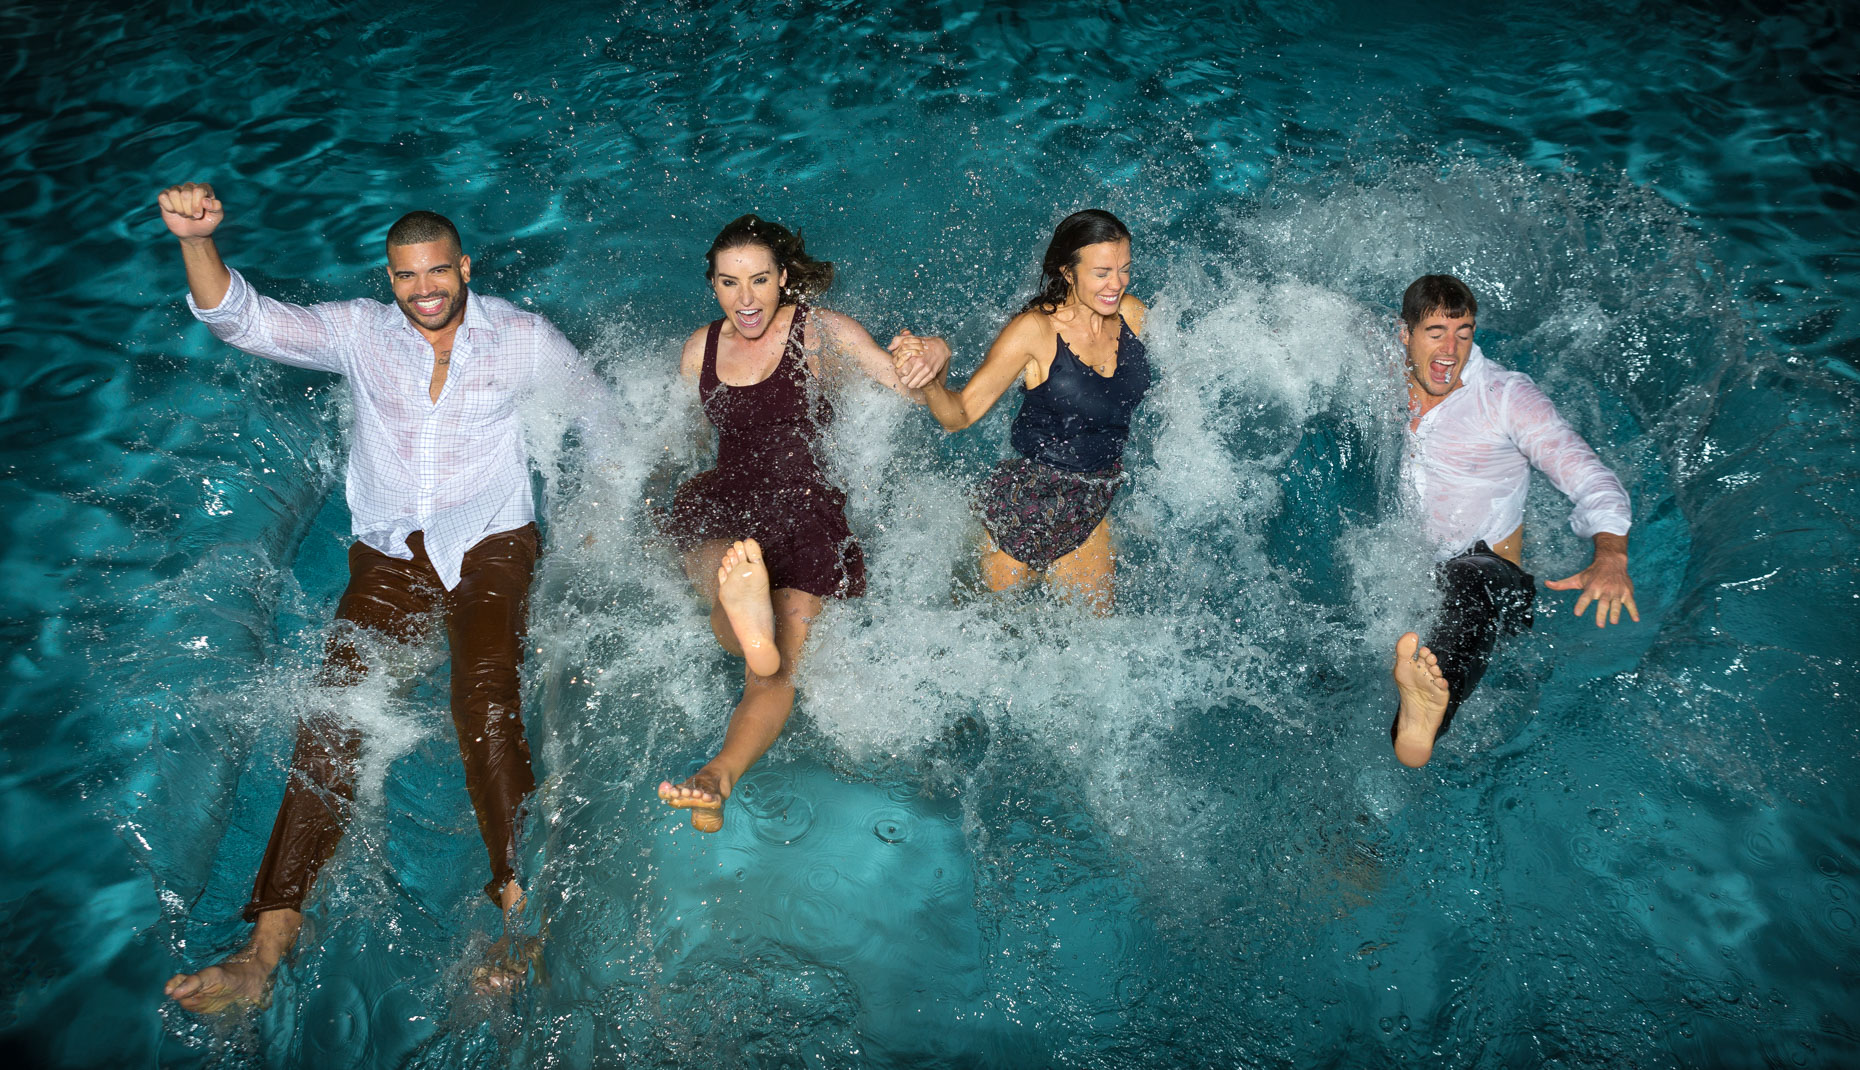 Four friends in pool, fully dressed, shot by Steven P. Widoff